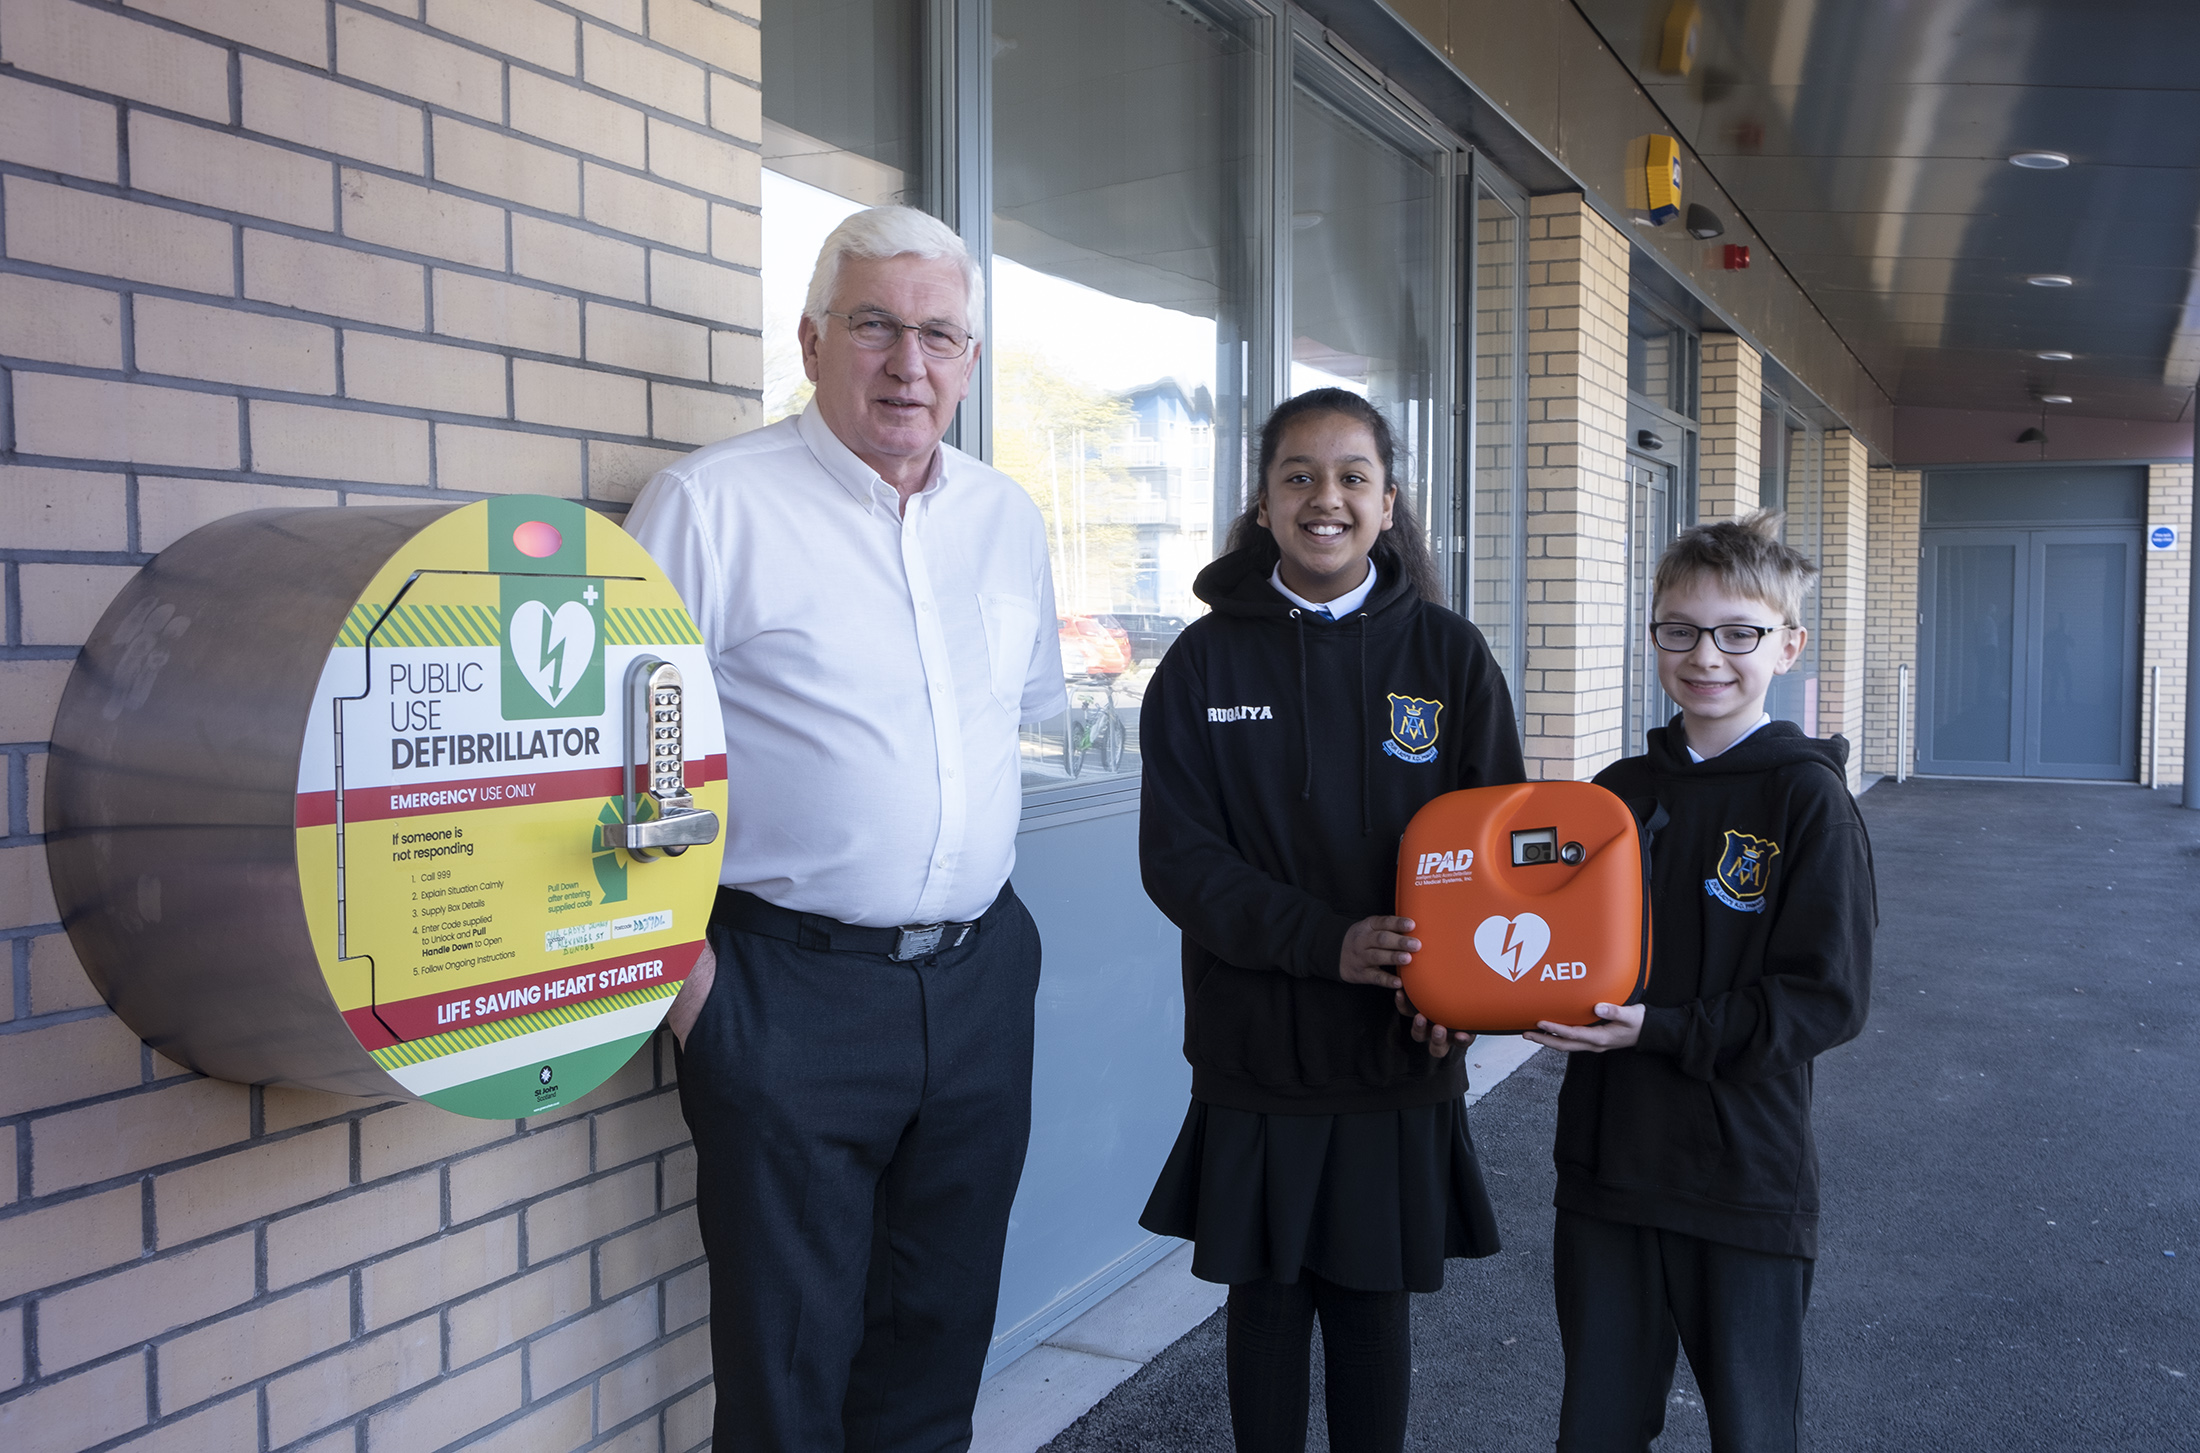 Ged Cashley suffered a heart attack at Dundee Ice Arena and his life was saved when his friends used a defibrillator to restart his heart. He is pictured at the installation of a defibrillator at Our Lady's RC Primary School in Dundee, with pupils Ruqaiya Anwar and Tobiasz Nowinski.